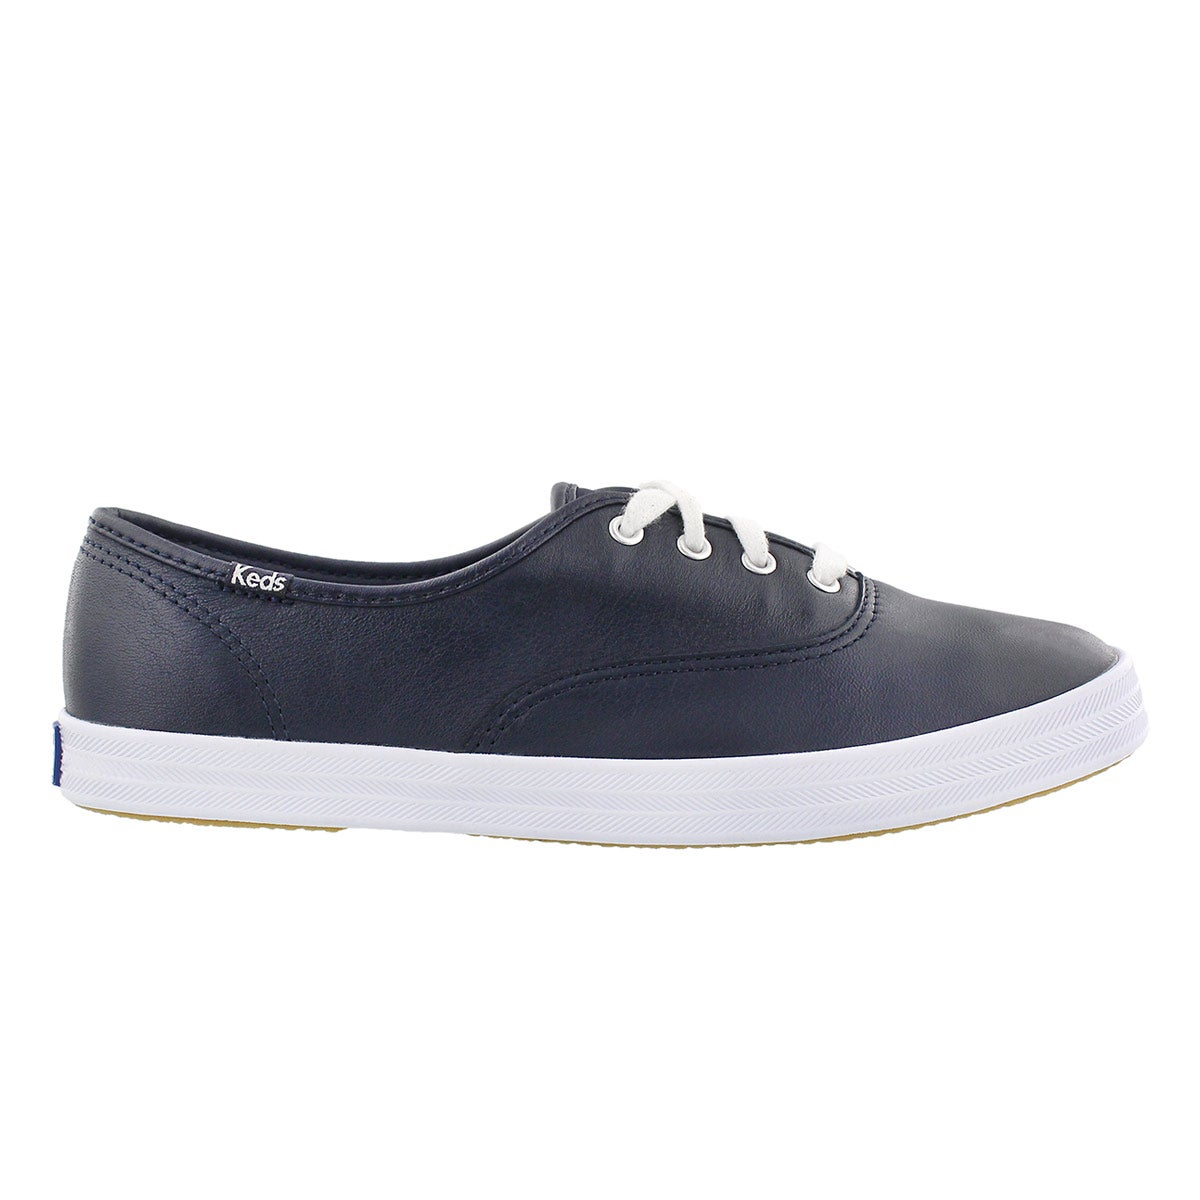 Lds Champion navy leather sneaker